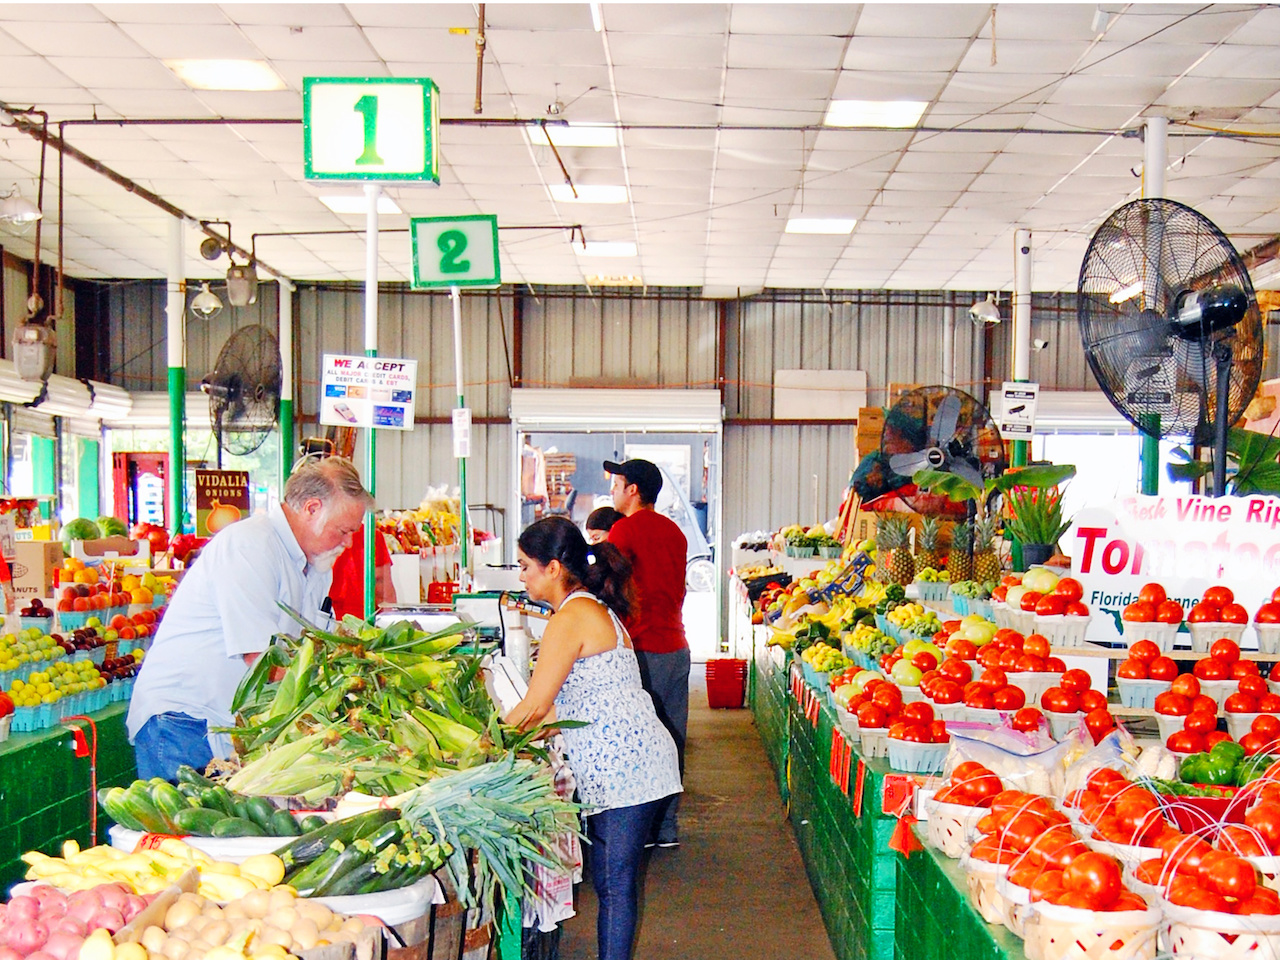 Large fans keep customers cool as they peruse the colorful rows of fresh veggies.